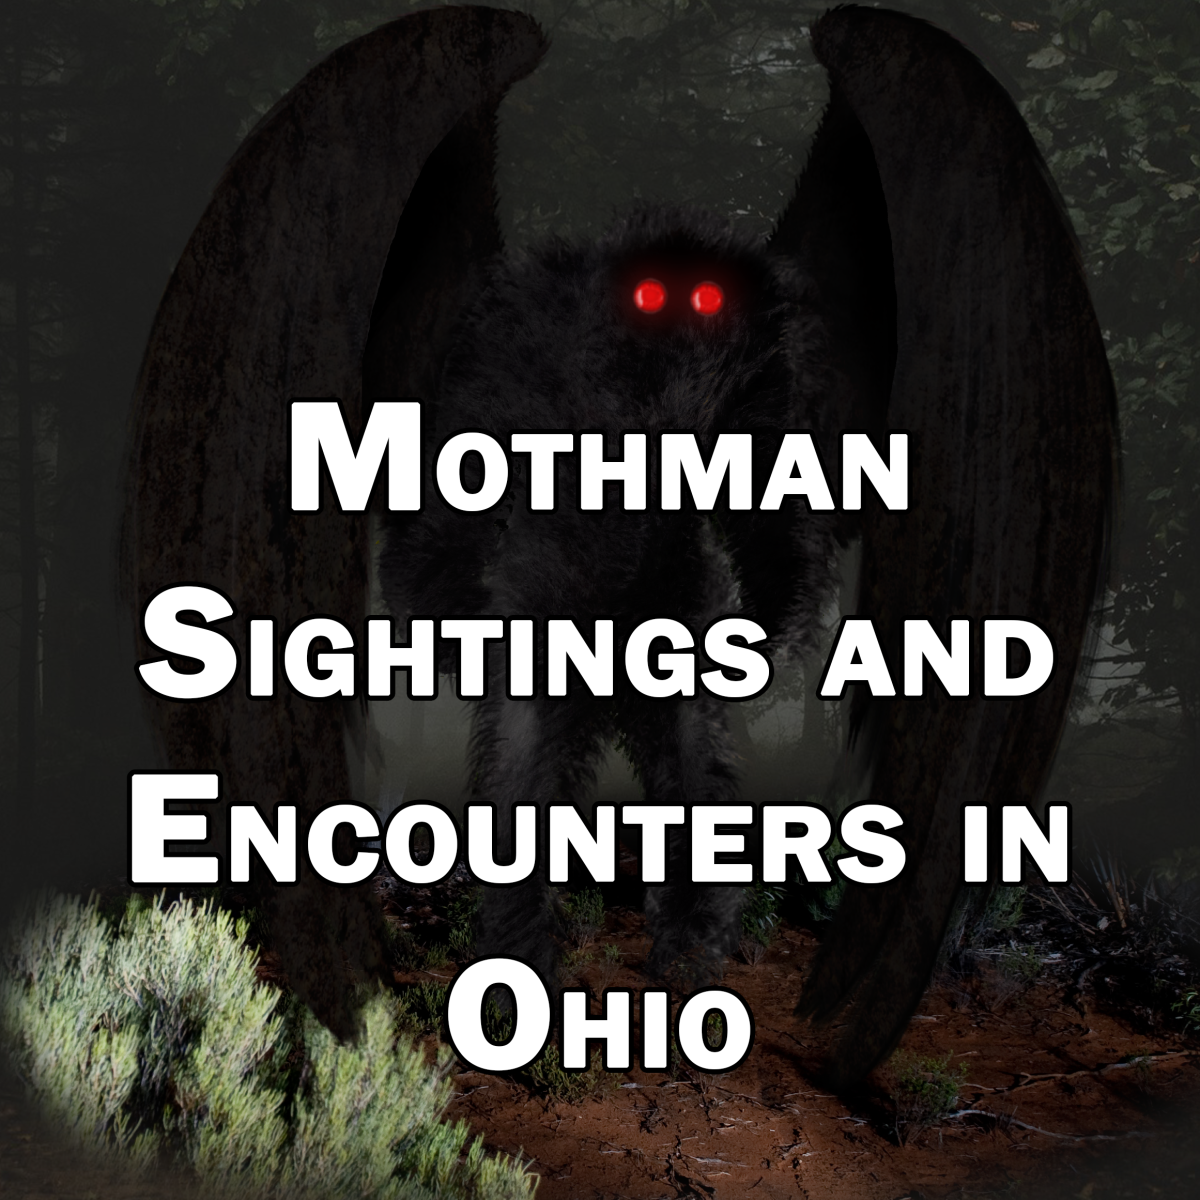 Mothman Sightings and Encounters in Ohio